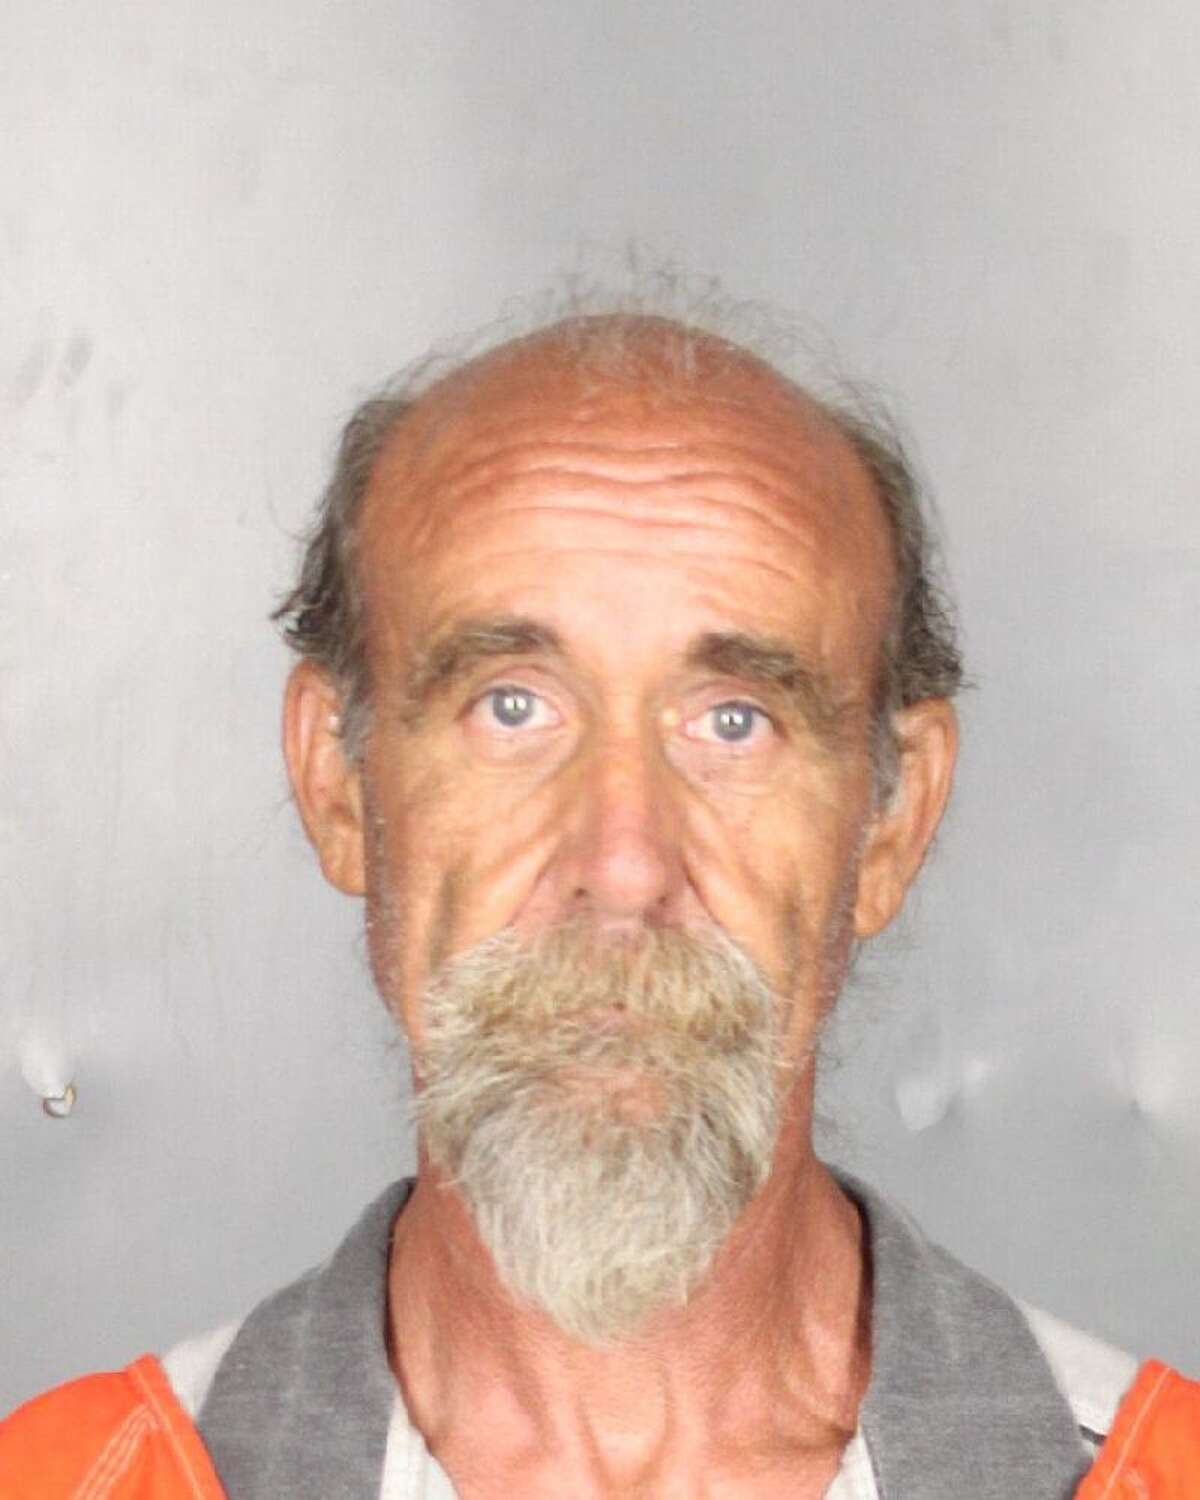 Steven Baker, 57, was one of nine arrested during an undercover prostitution sting in Waco, Texas. The operation ran July 21 thru July 23.